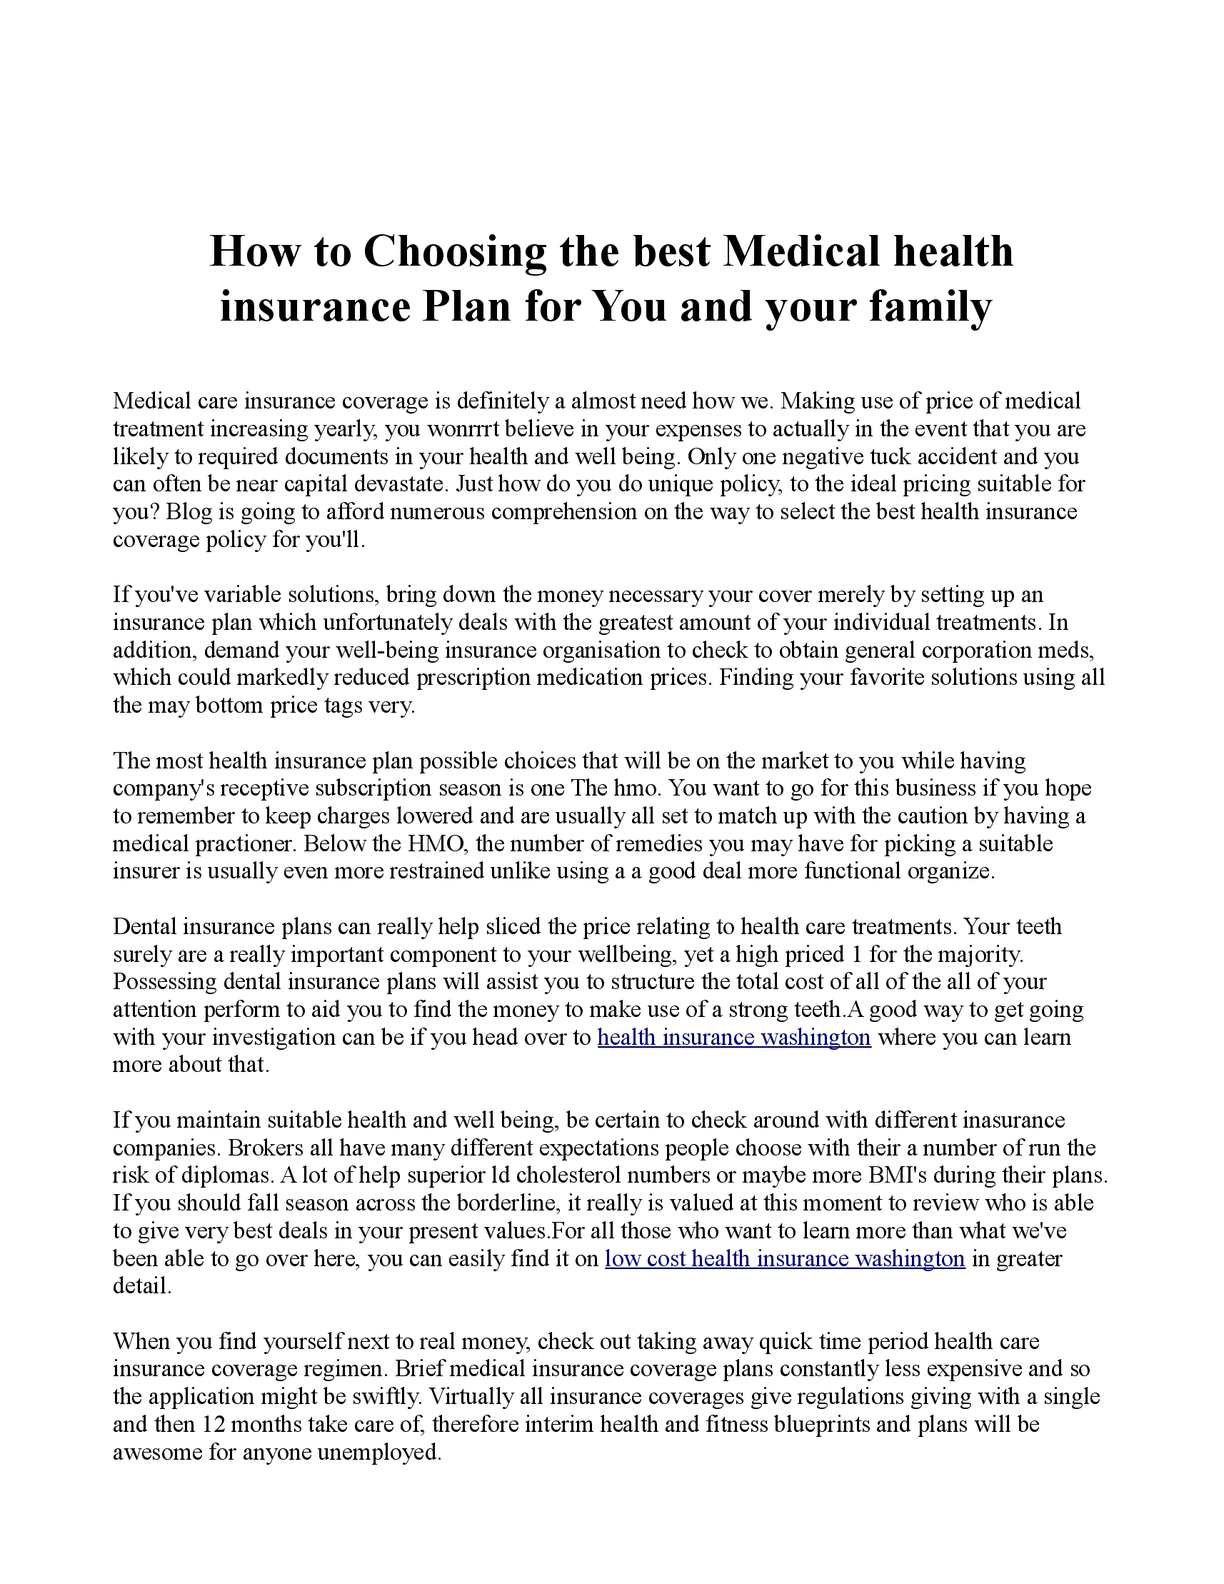 Calameo How To Choosing The Best Medical Health Insurance Plan For You And Your Family